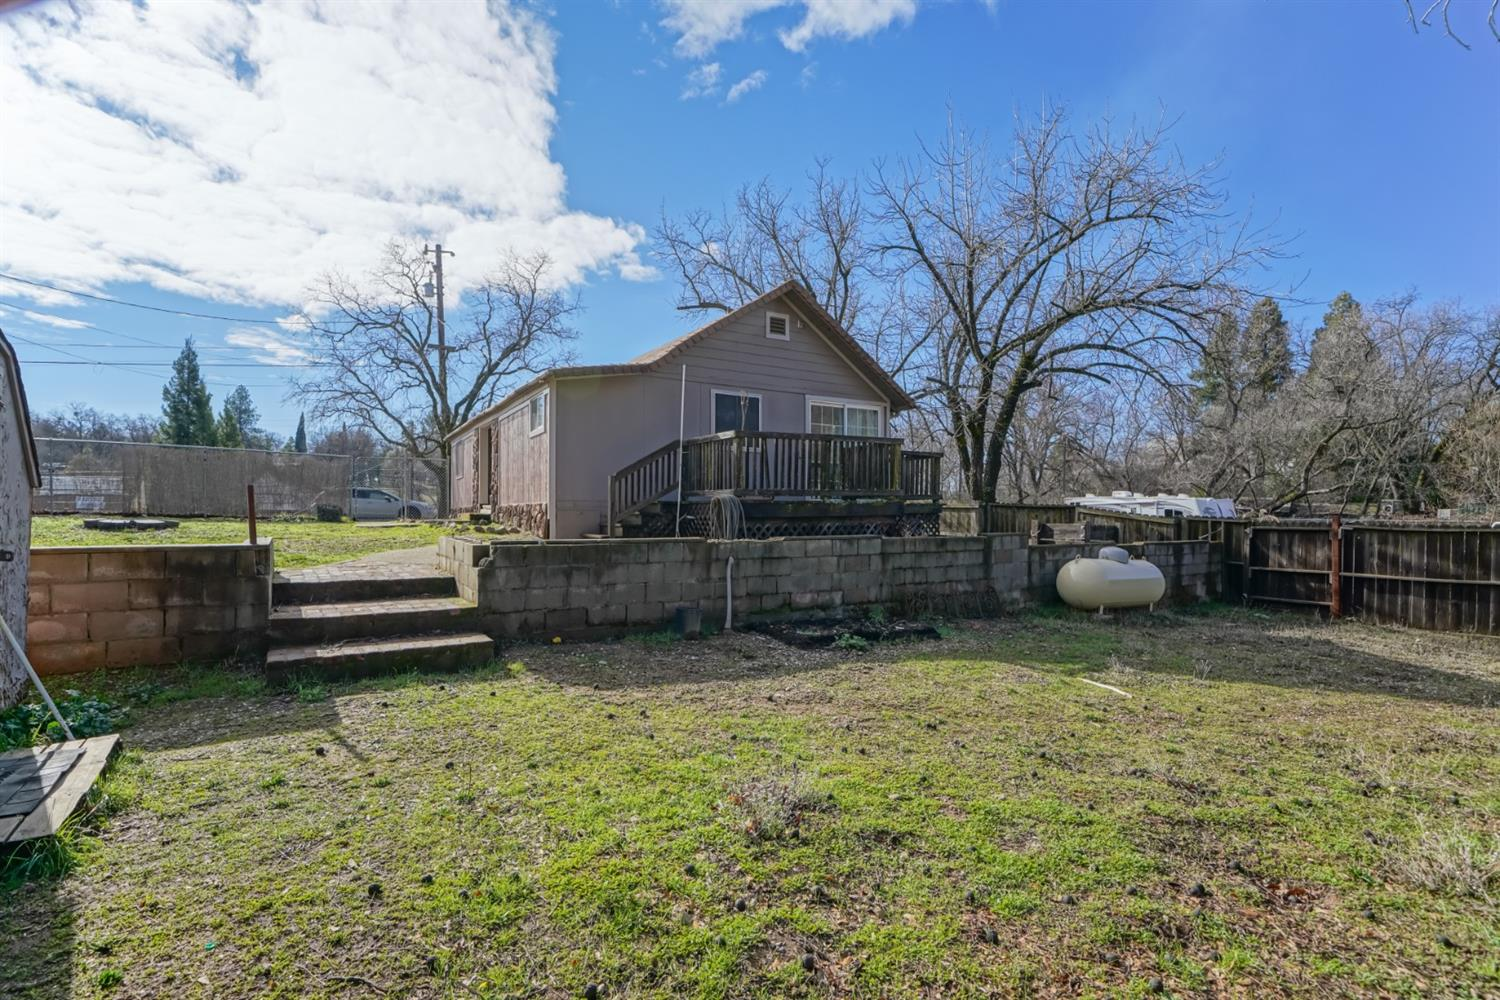 SITUATED IN THE QUAINT TOWN OF EL DORADO THE SAME CHARM AND CHARACTER REFLECTS IN THIS CUTE LITTLE HOME -Fantastic potential with multi zoning.  Cathedral ceiling in living room, bright shiny spacious kitchen, 2 nice sized bedrooms with built-in storage units.  Lovely decking, and onsite laundry. Situated on a large fenced corner lot that is two tear and all usable.  Plenty of parking, approximately a block to public transit, grocery store, fire department and some great specialty shops.  Possible daycare, salon, boutique, auto shop, etc.